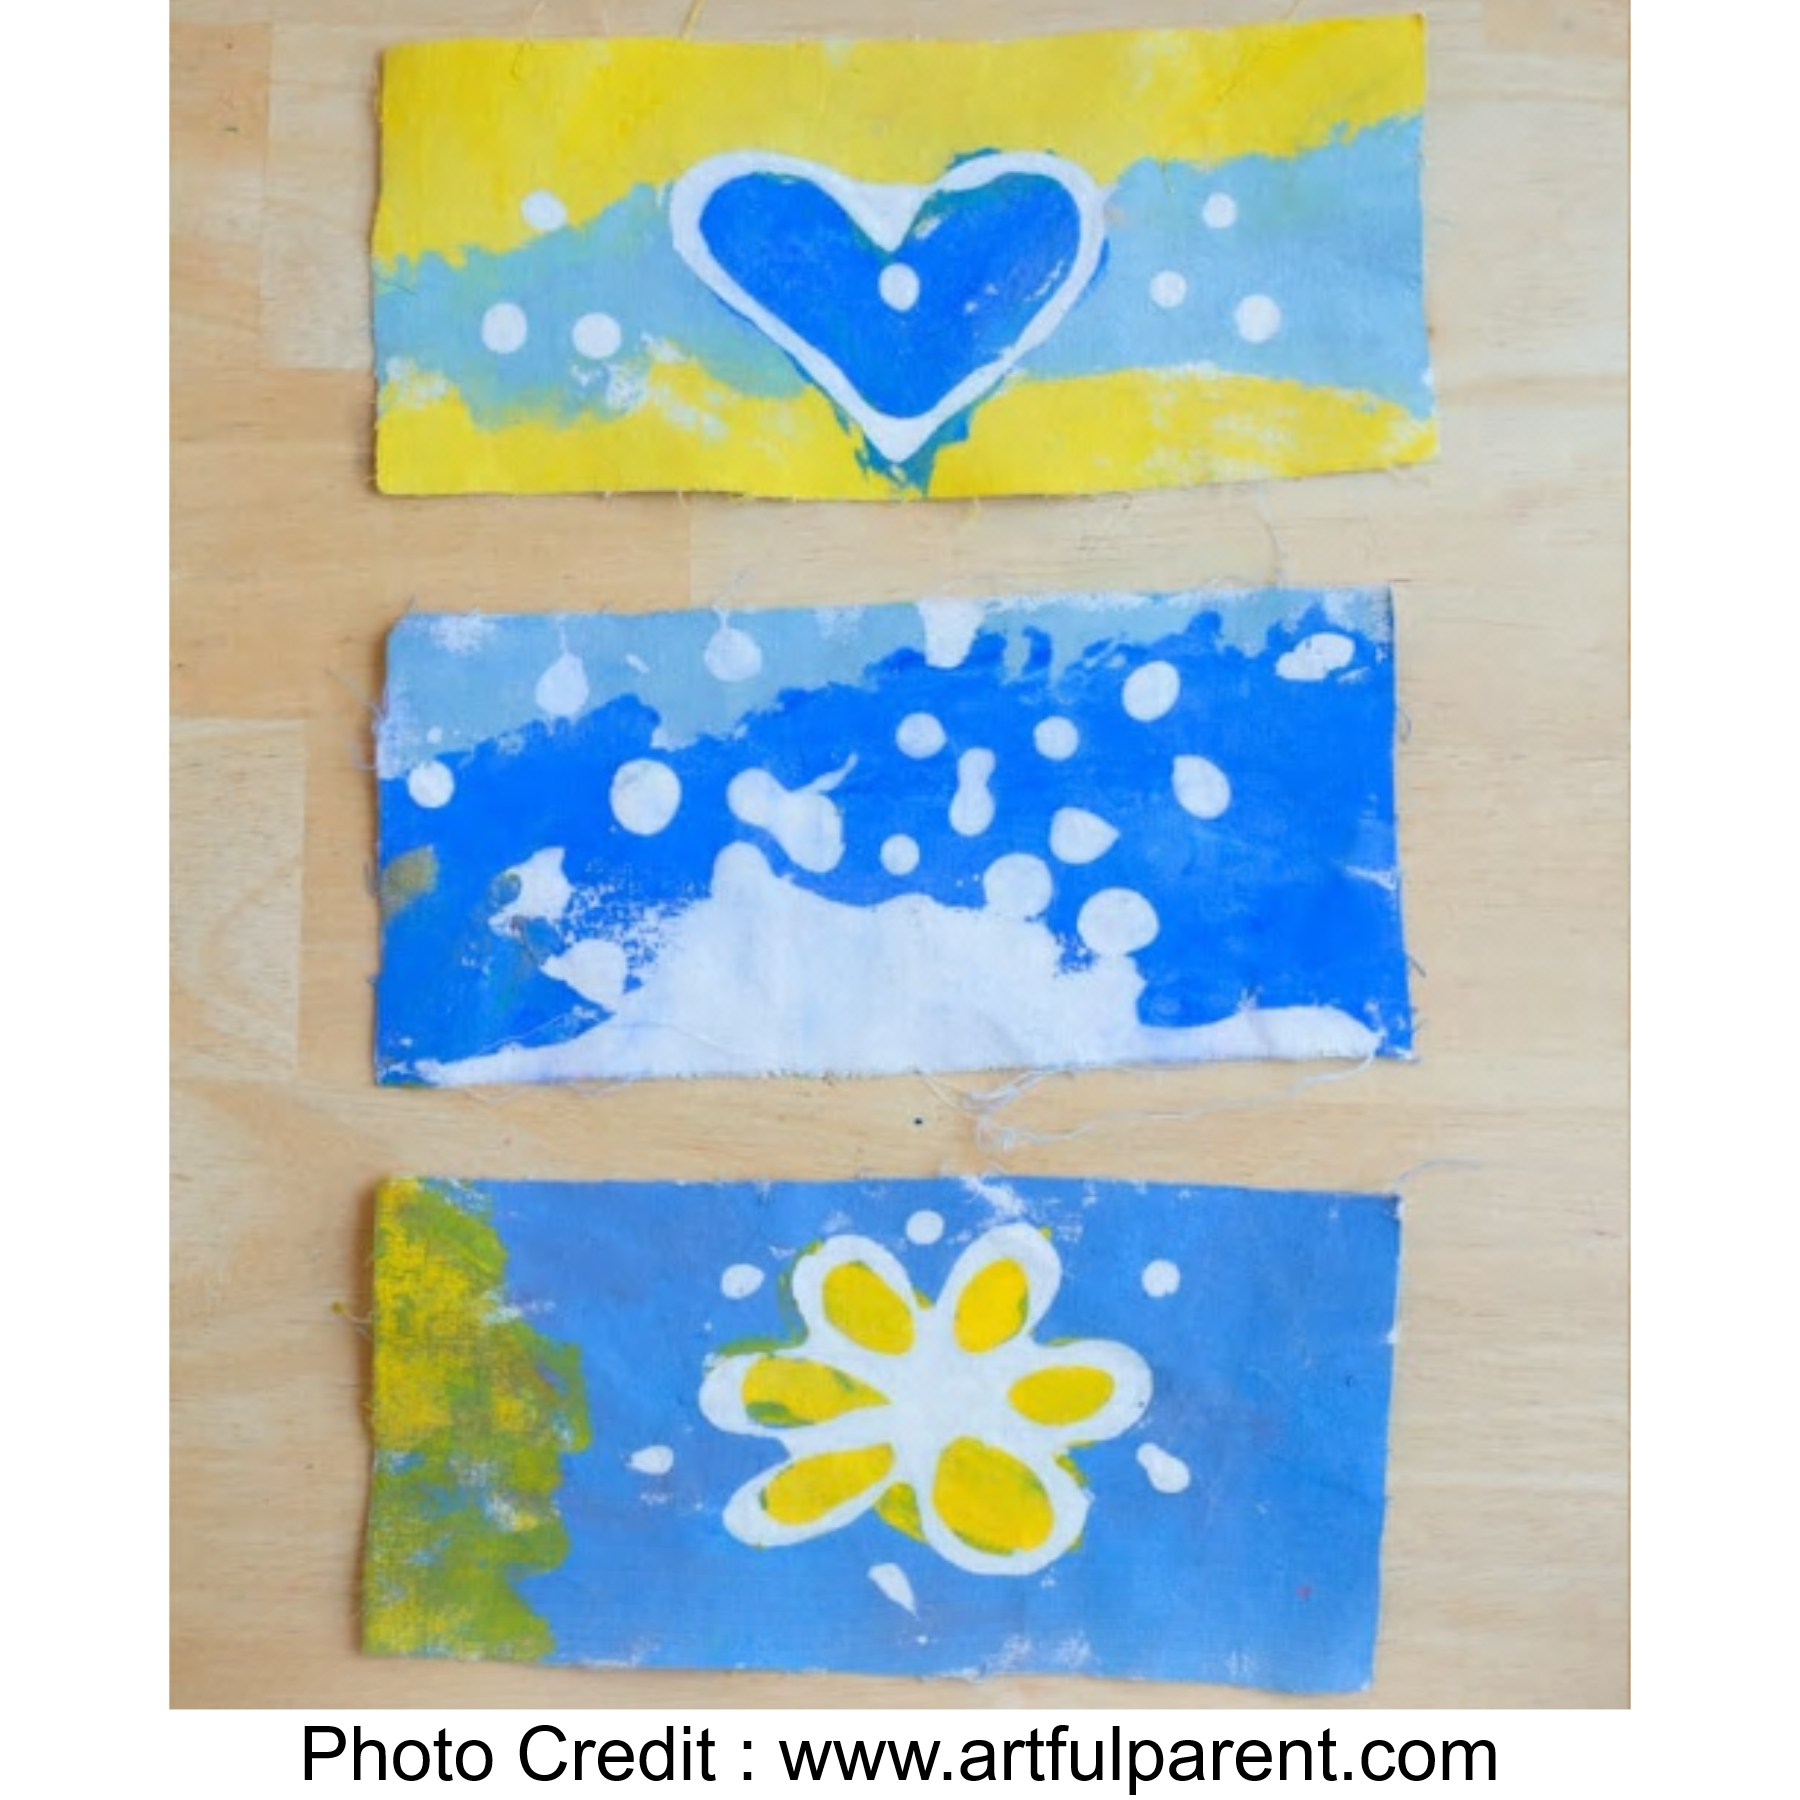 Glue Batik Art from Artful Parent